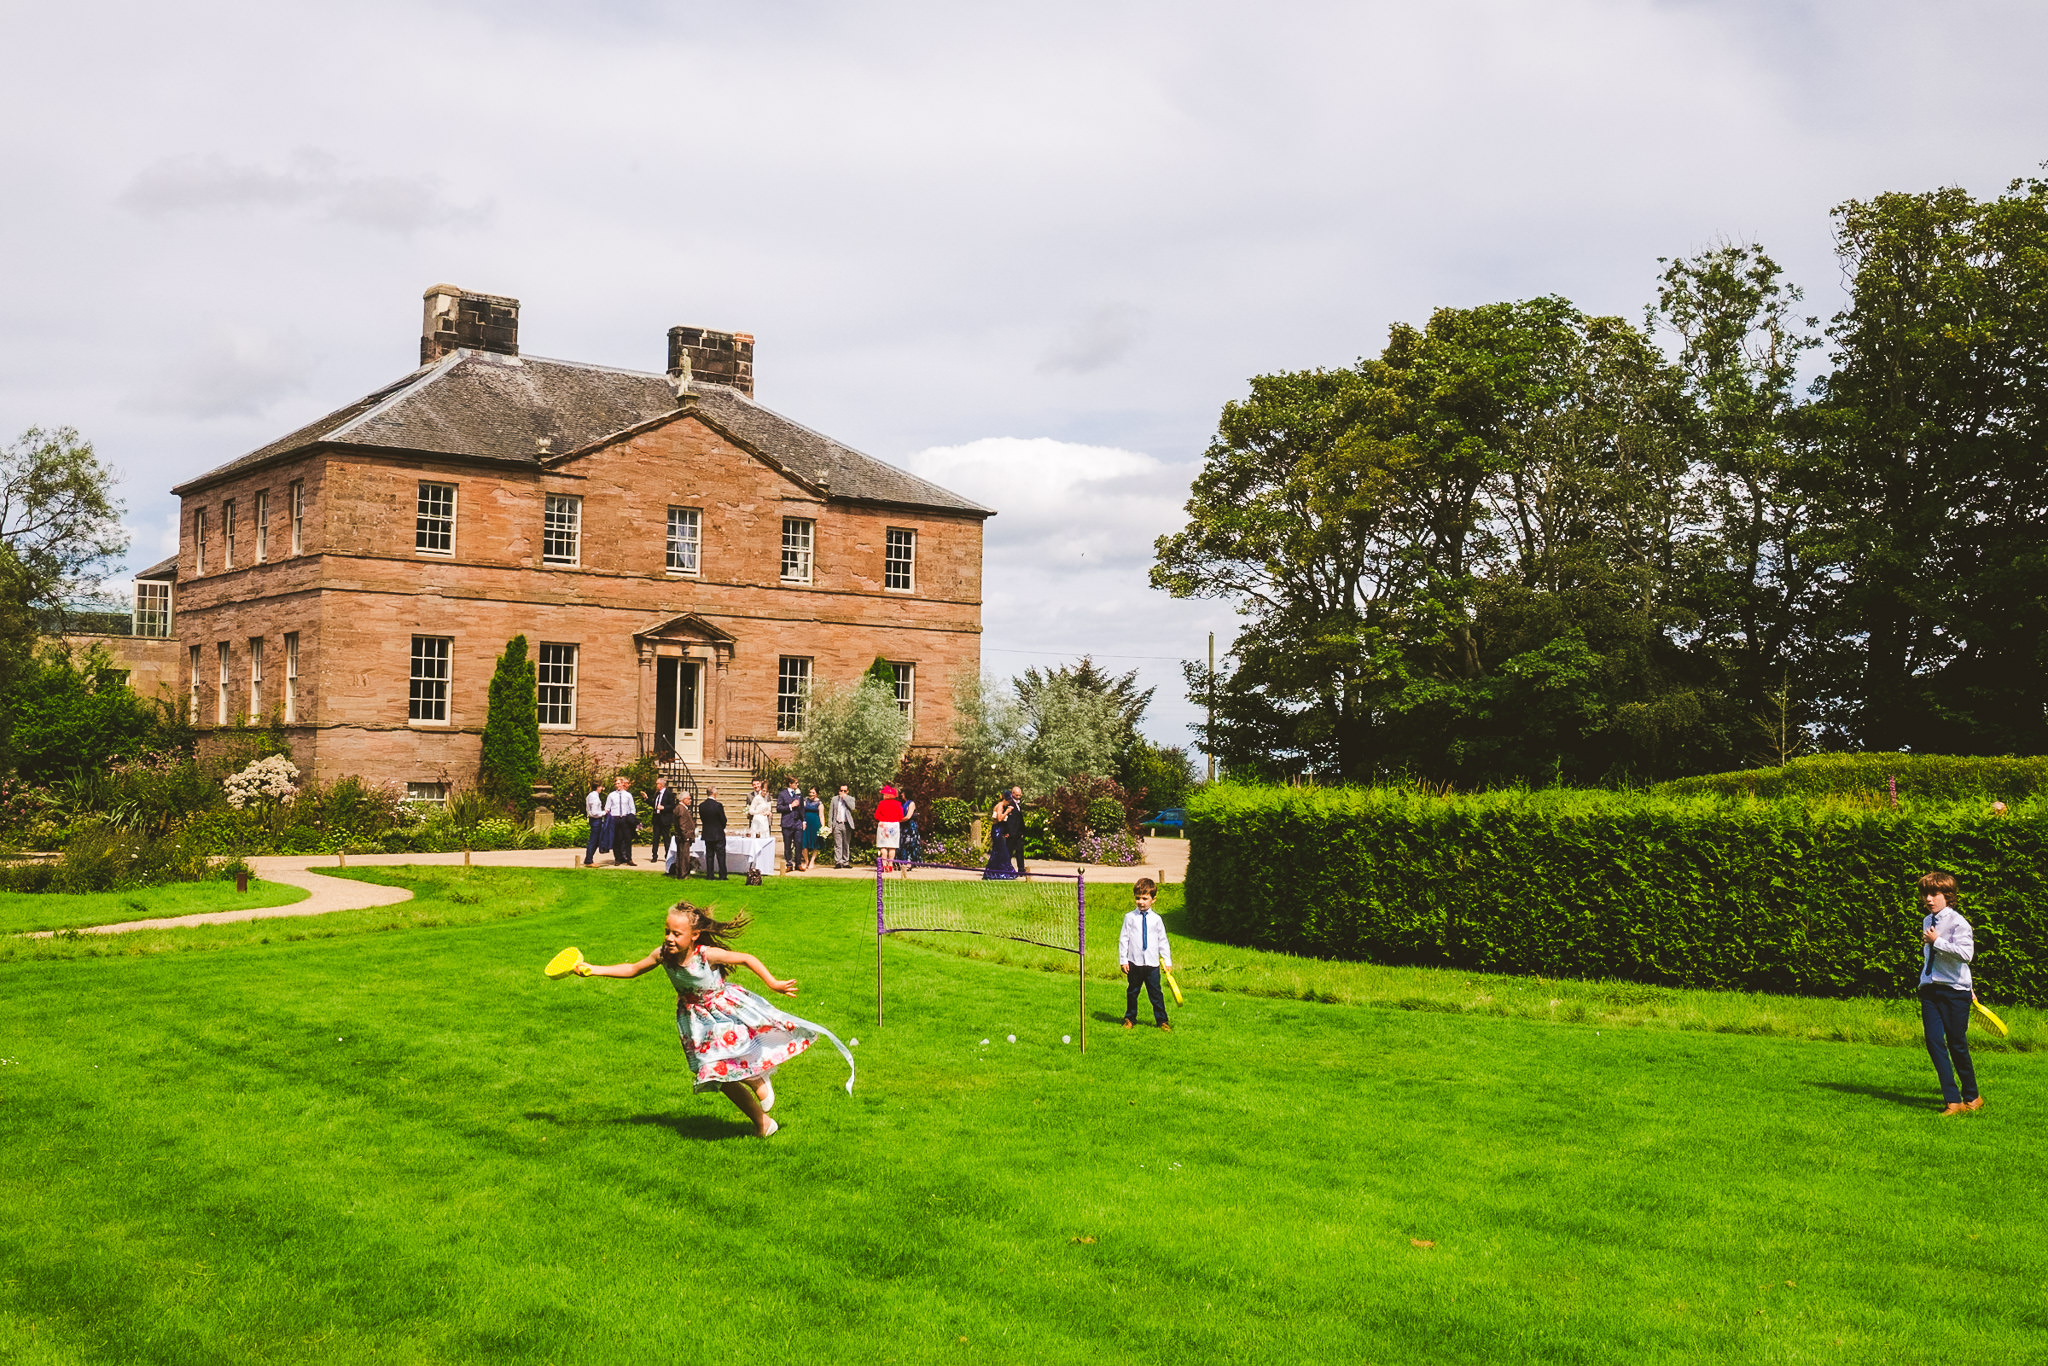 Children play lawn games with Newton Hall in the background